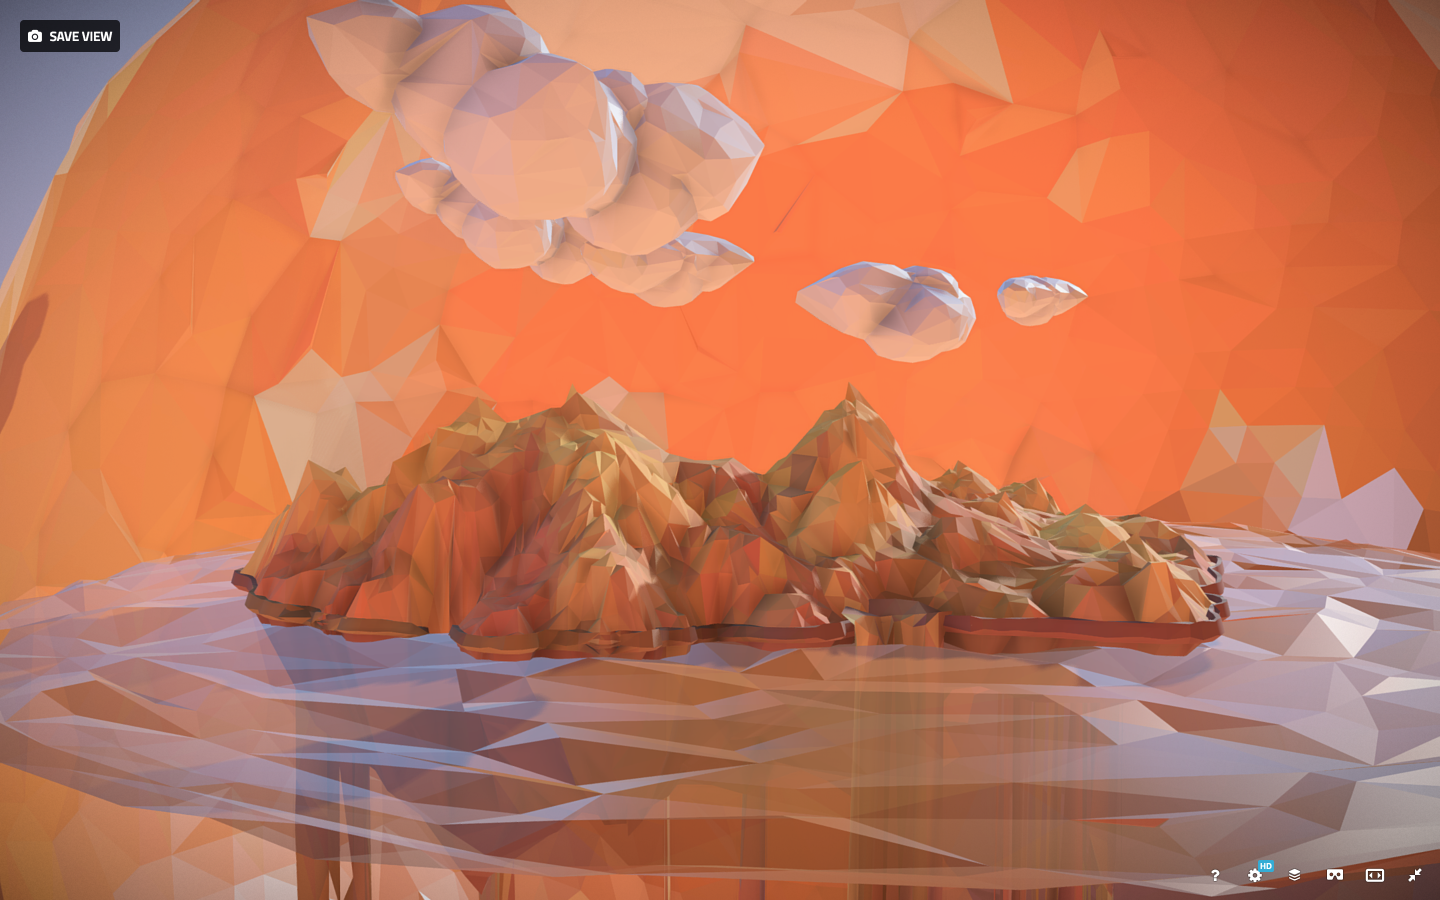 Low Polygon Art Sand Waterfall Island Mountain